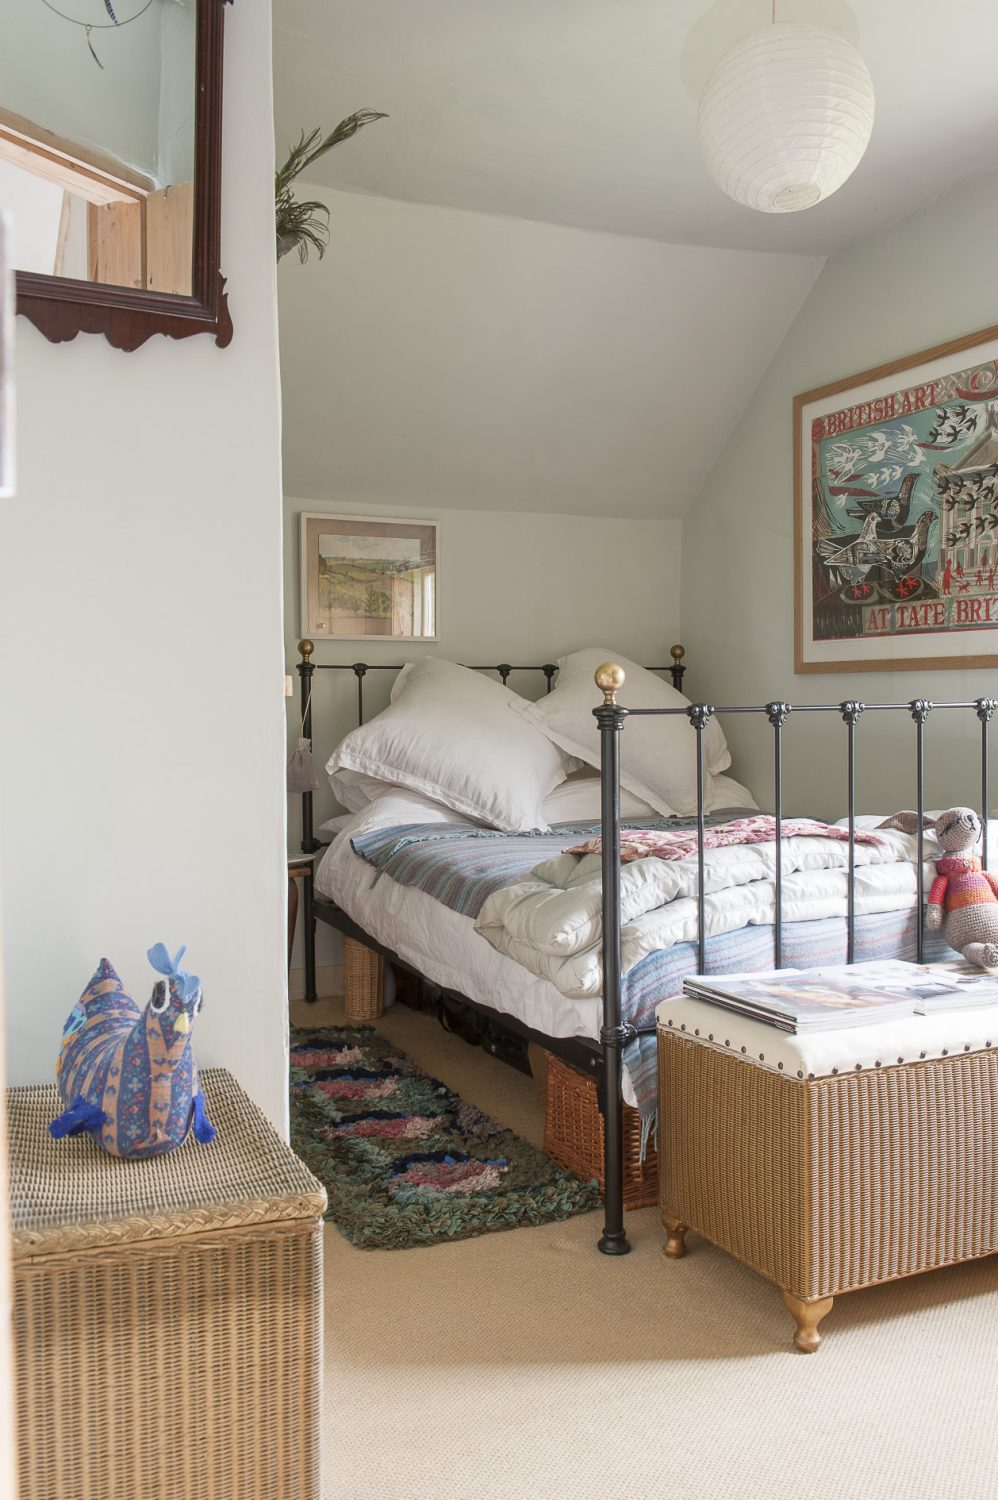 The bed in the guest room is dressed with an invitingly cosy eiderdown and plump pillows